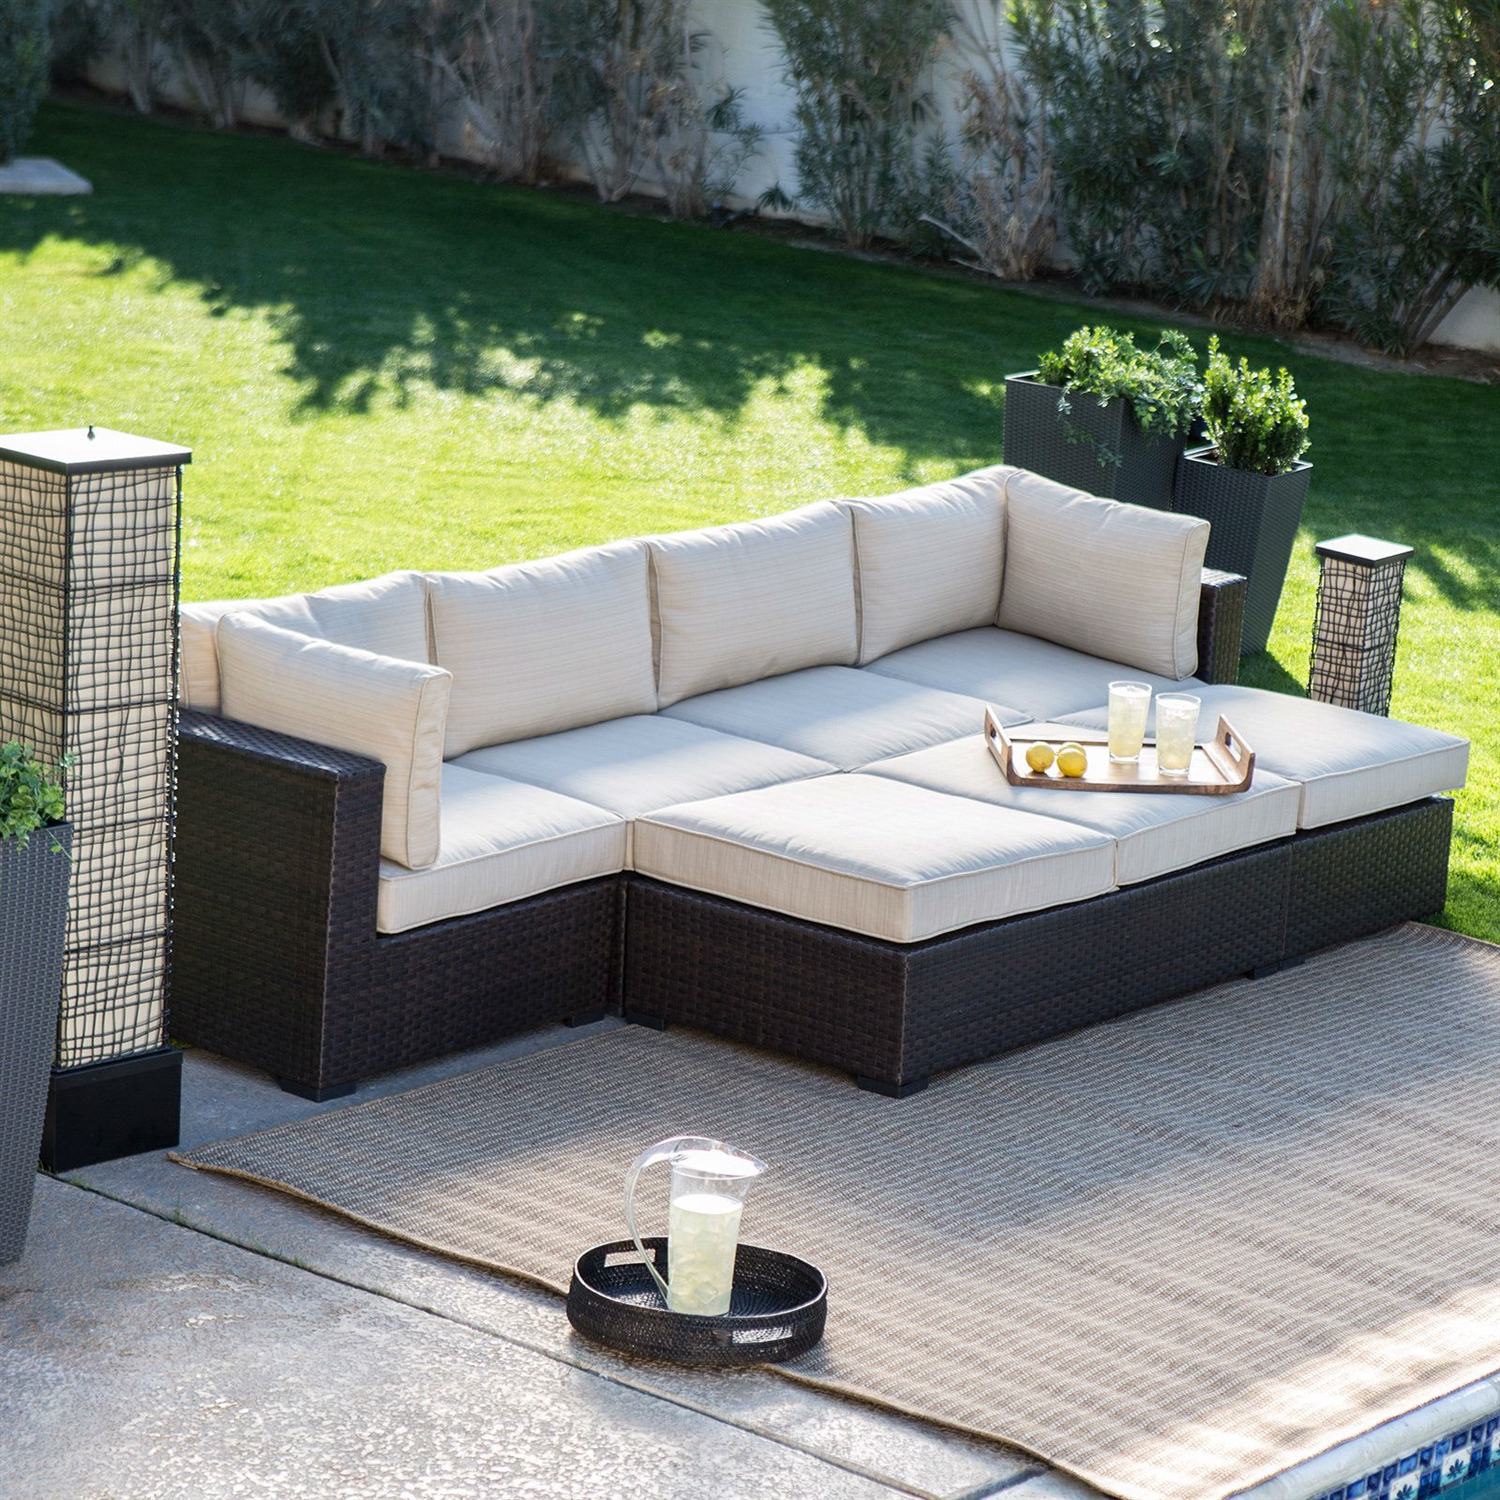 patio to care com black tomichbros resin wicker types of how outdoor furniture for